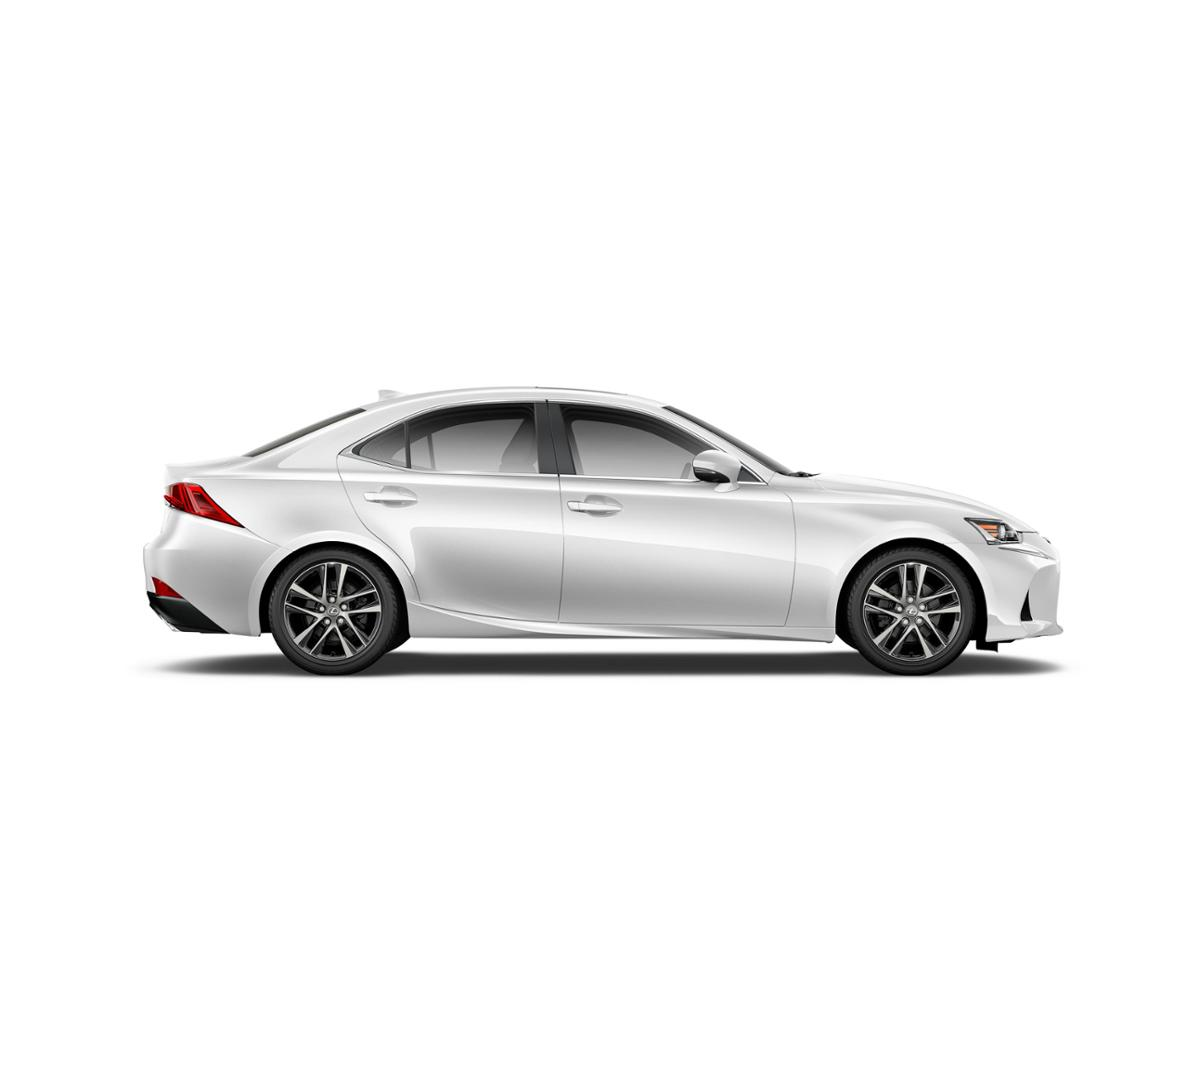 Lexus Of Memphis Used Cars: 2019 Lexus IS 300